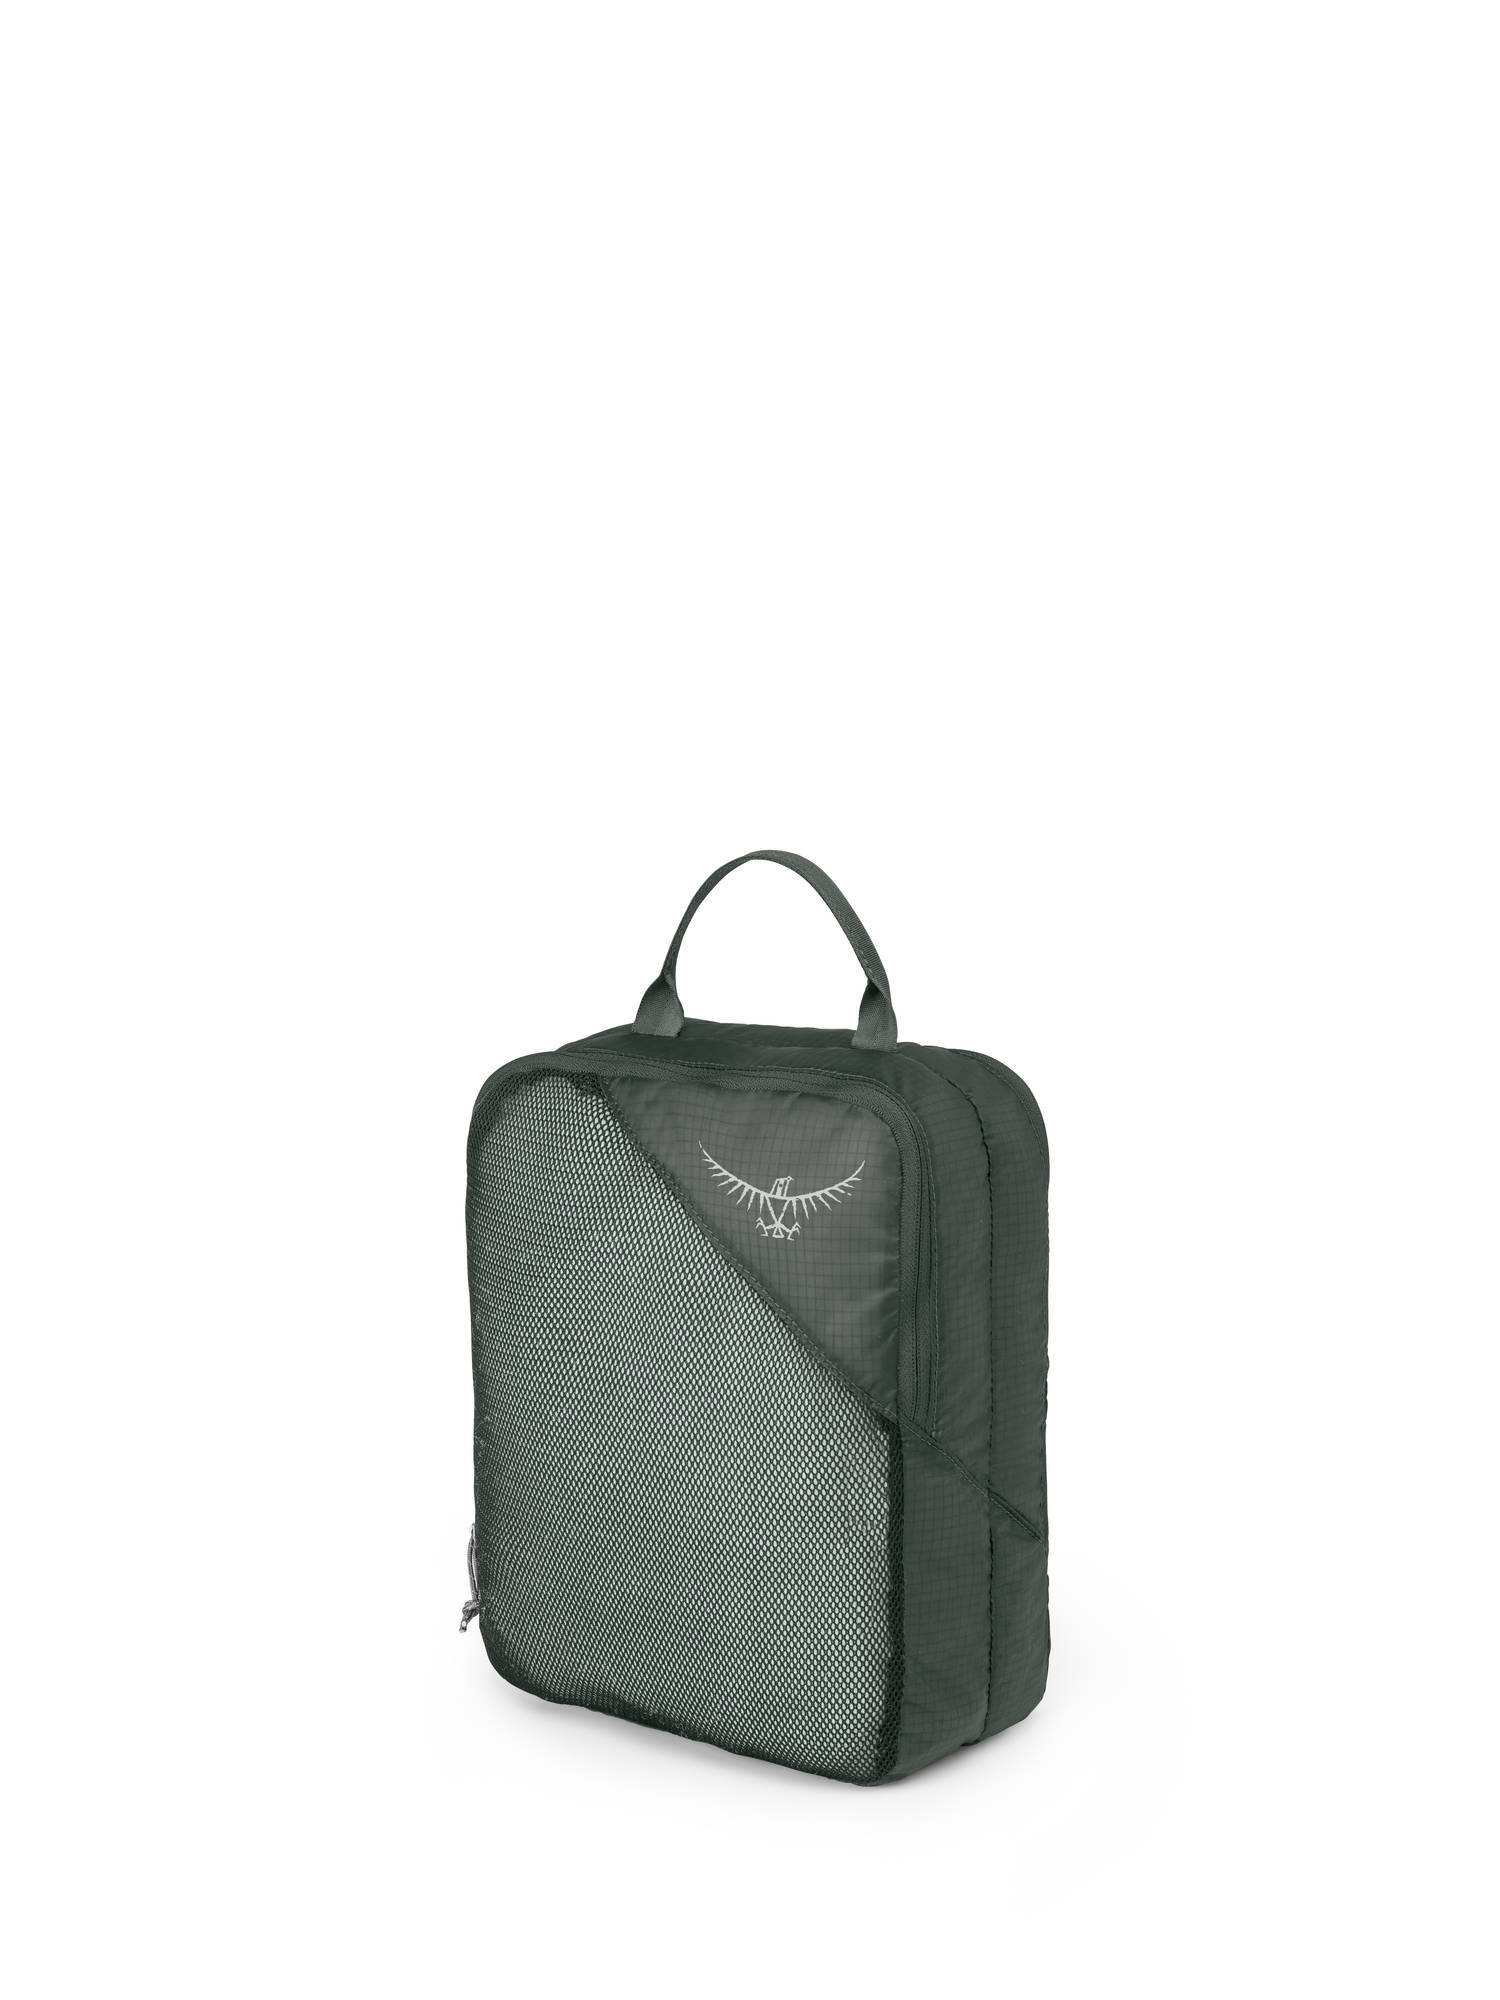 Аксессуары Чехол для одежды Osprey Ultralight Double Sided Cube Medium Shadow Grey UL_Double_Sided_Cube_M_F17_Side_Shadow_Grey_web.jpg